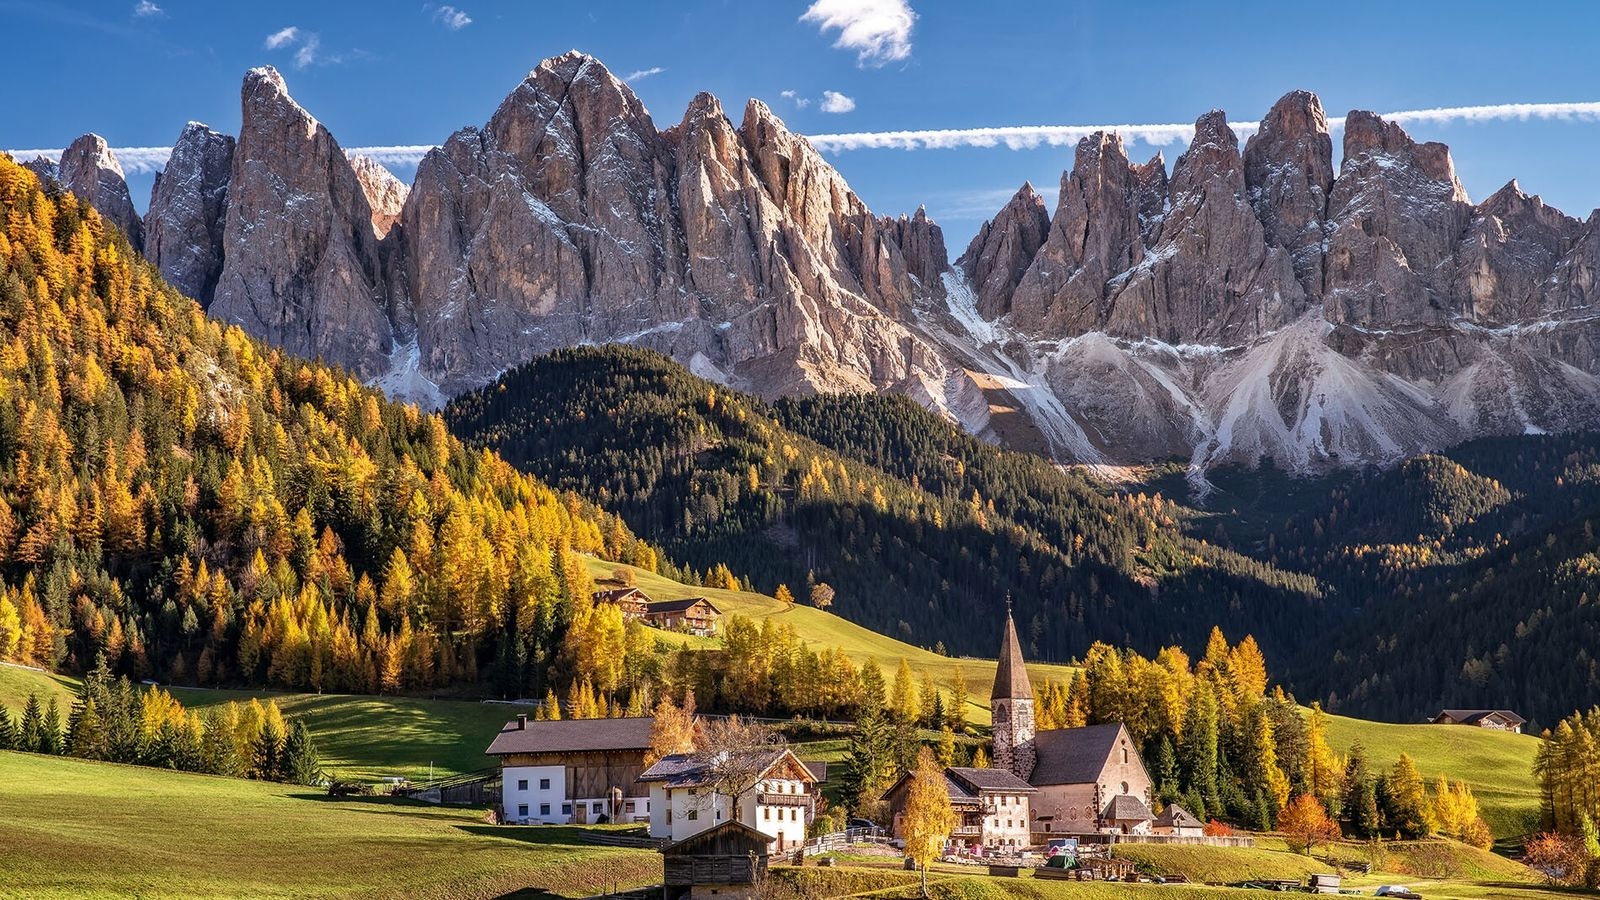 The Church of St. Magdalena in Funes Valley, Alto Adige is surrounded by spectacular Dolomite scenery.